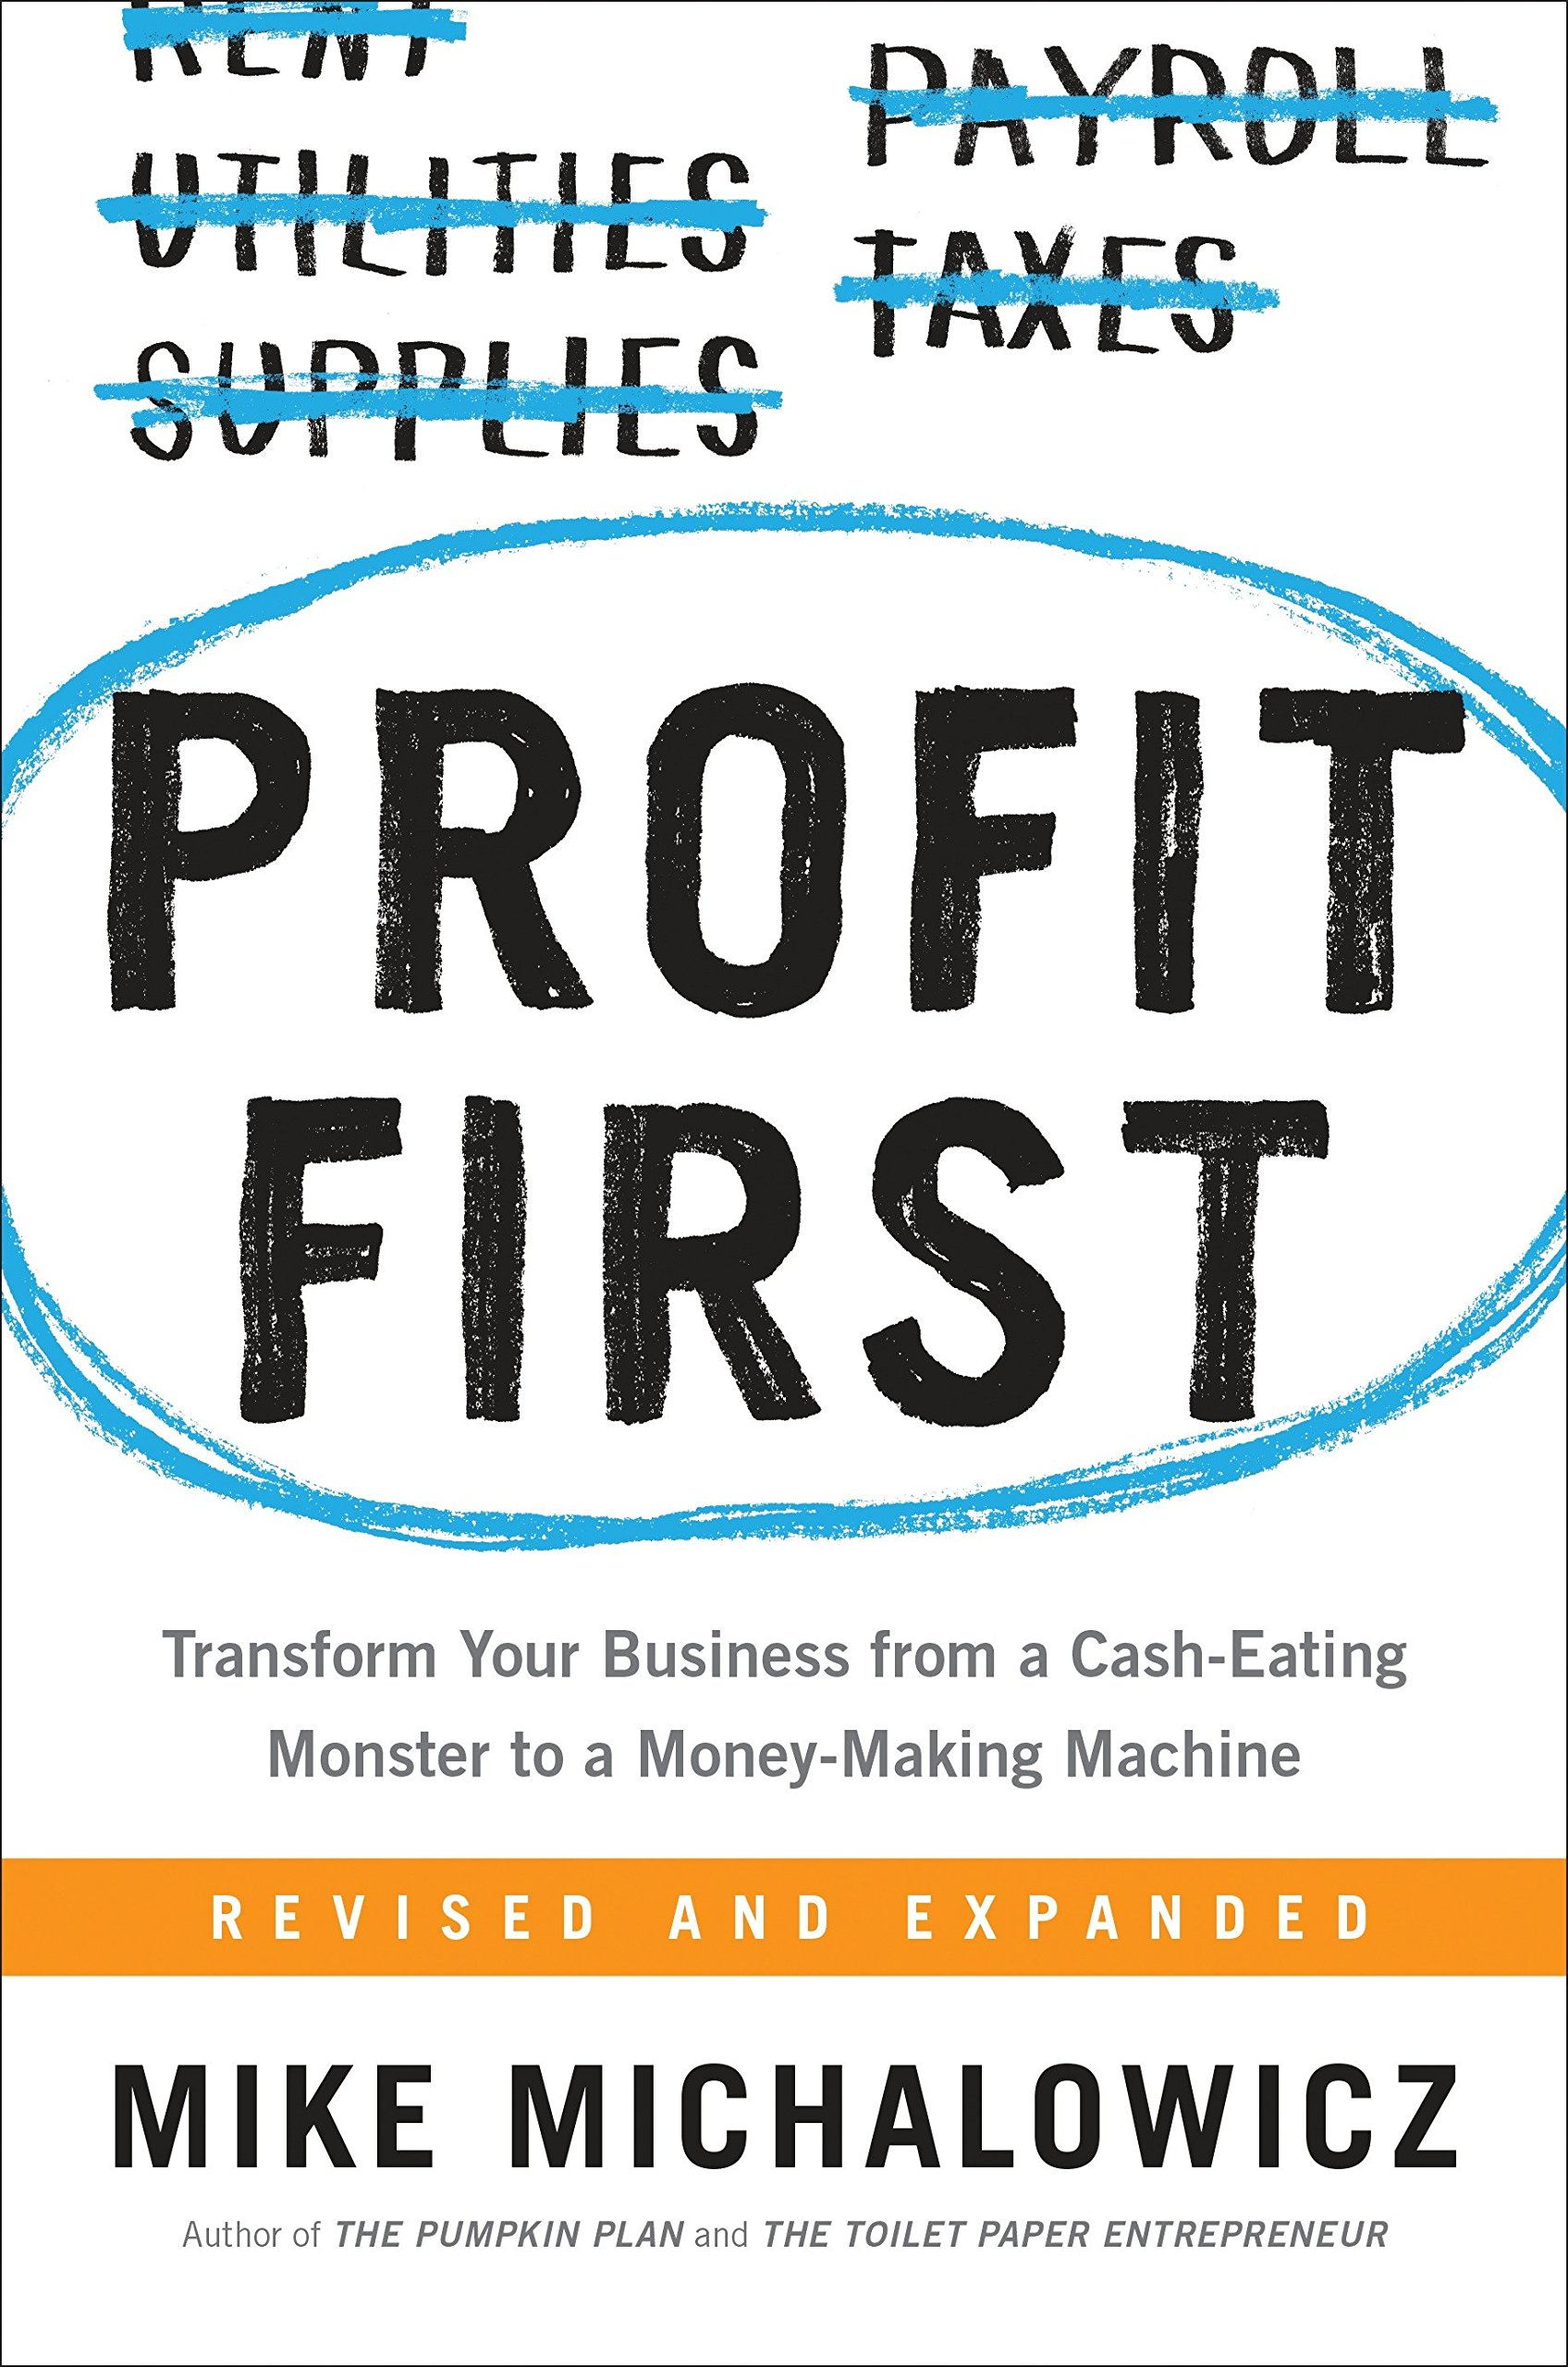 Profit First by Mike Michalowicz - Available at My Business Coach